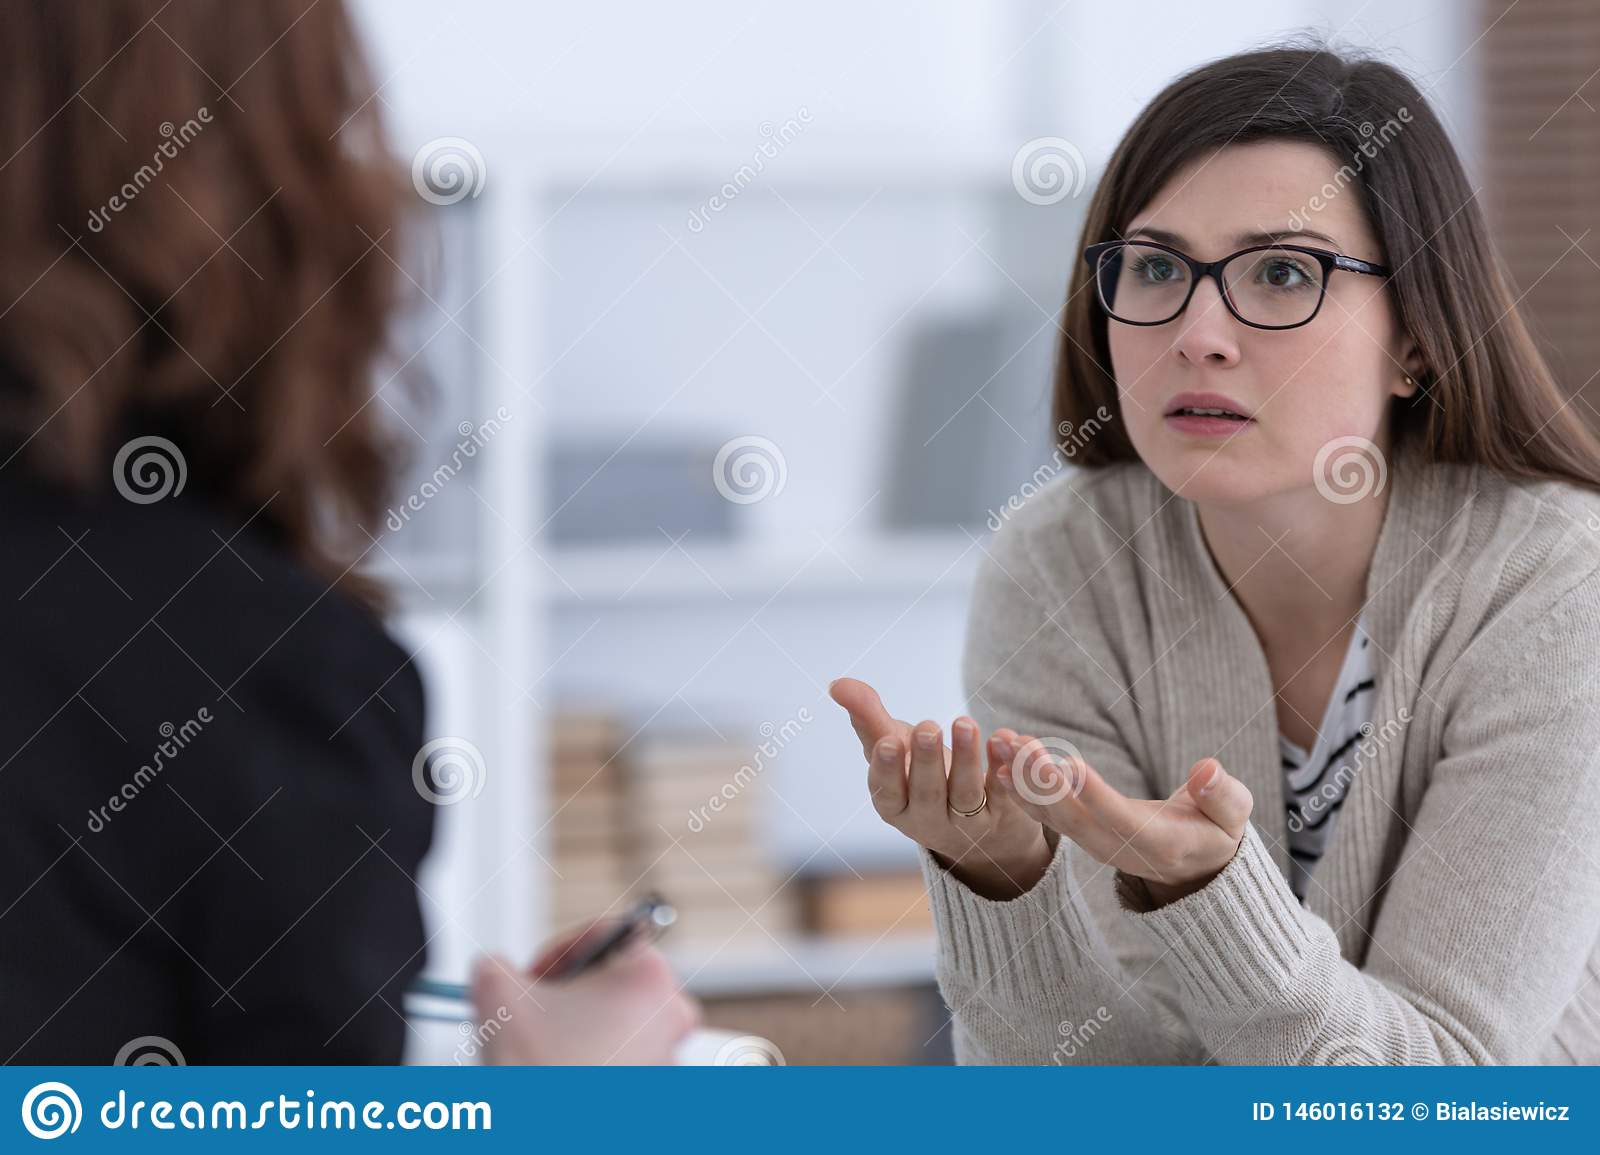 Woman with problem and counselor during therapy session